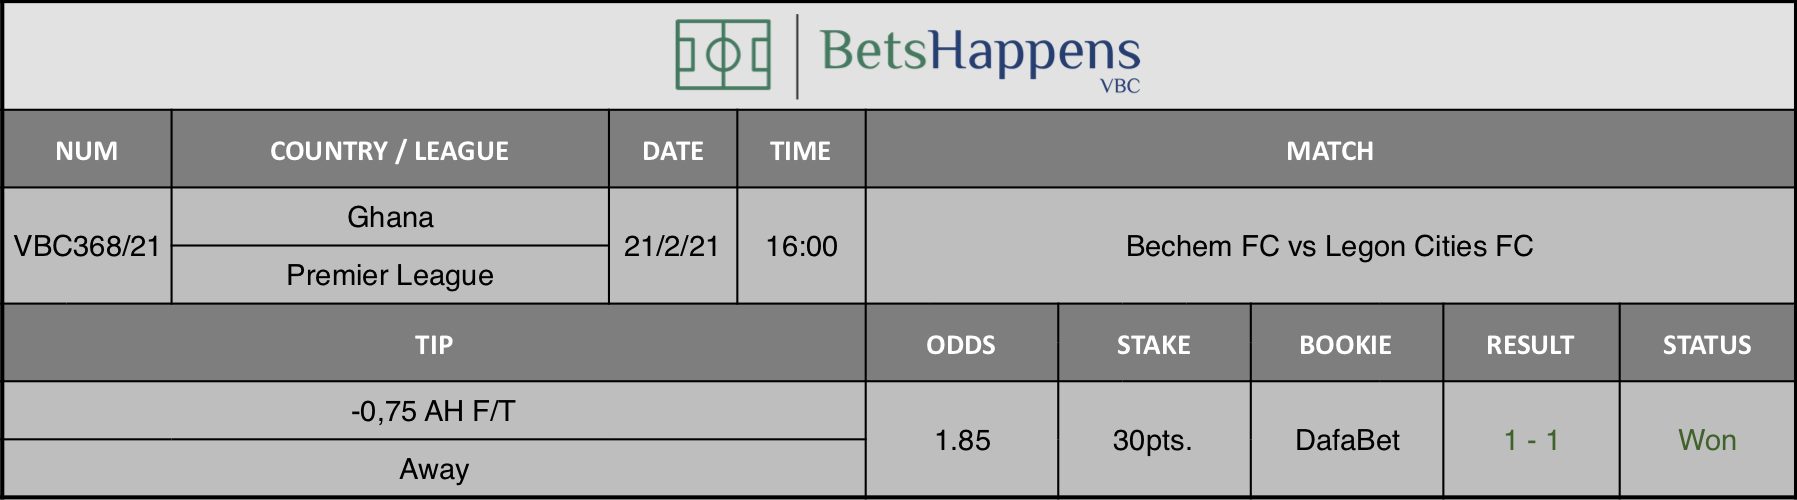 Results of our tip for the Bechem FC vs Legon Cities FC match where -0,75 AH F/T Away is recommended.